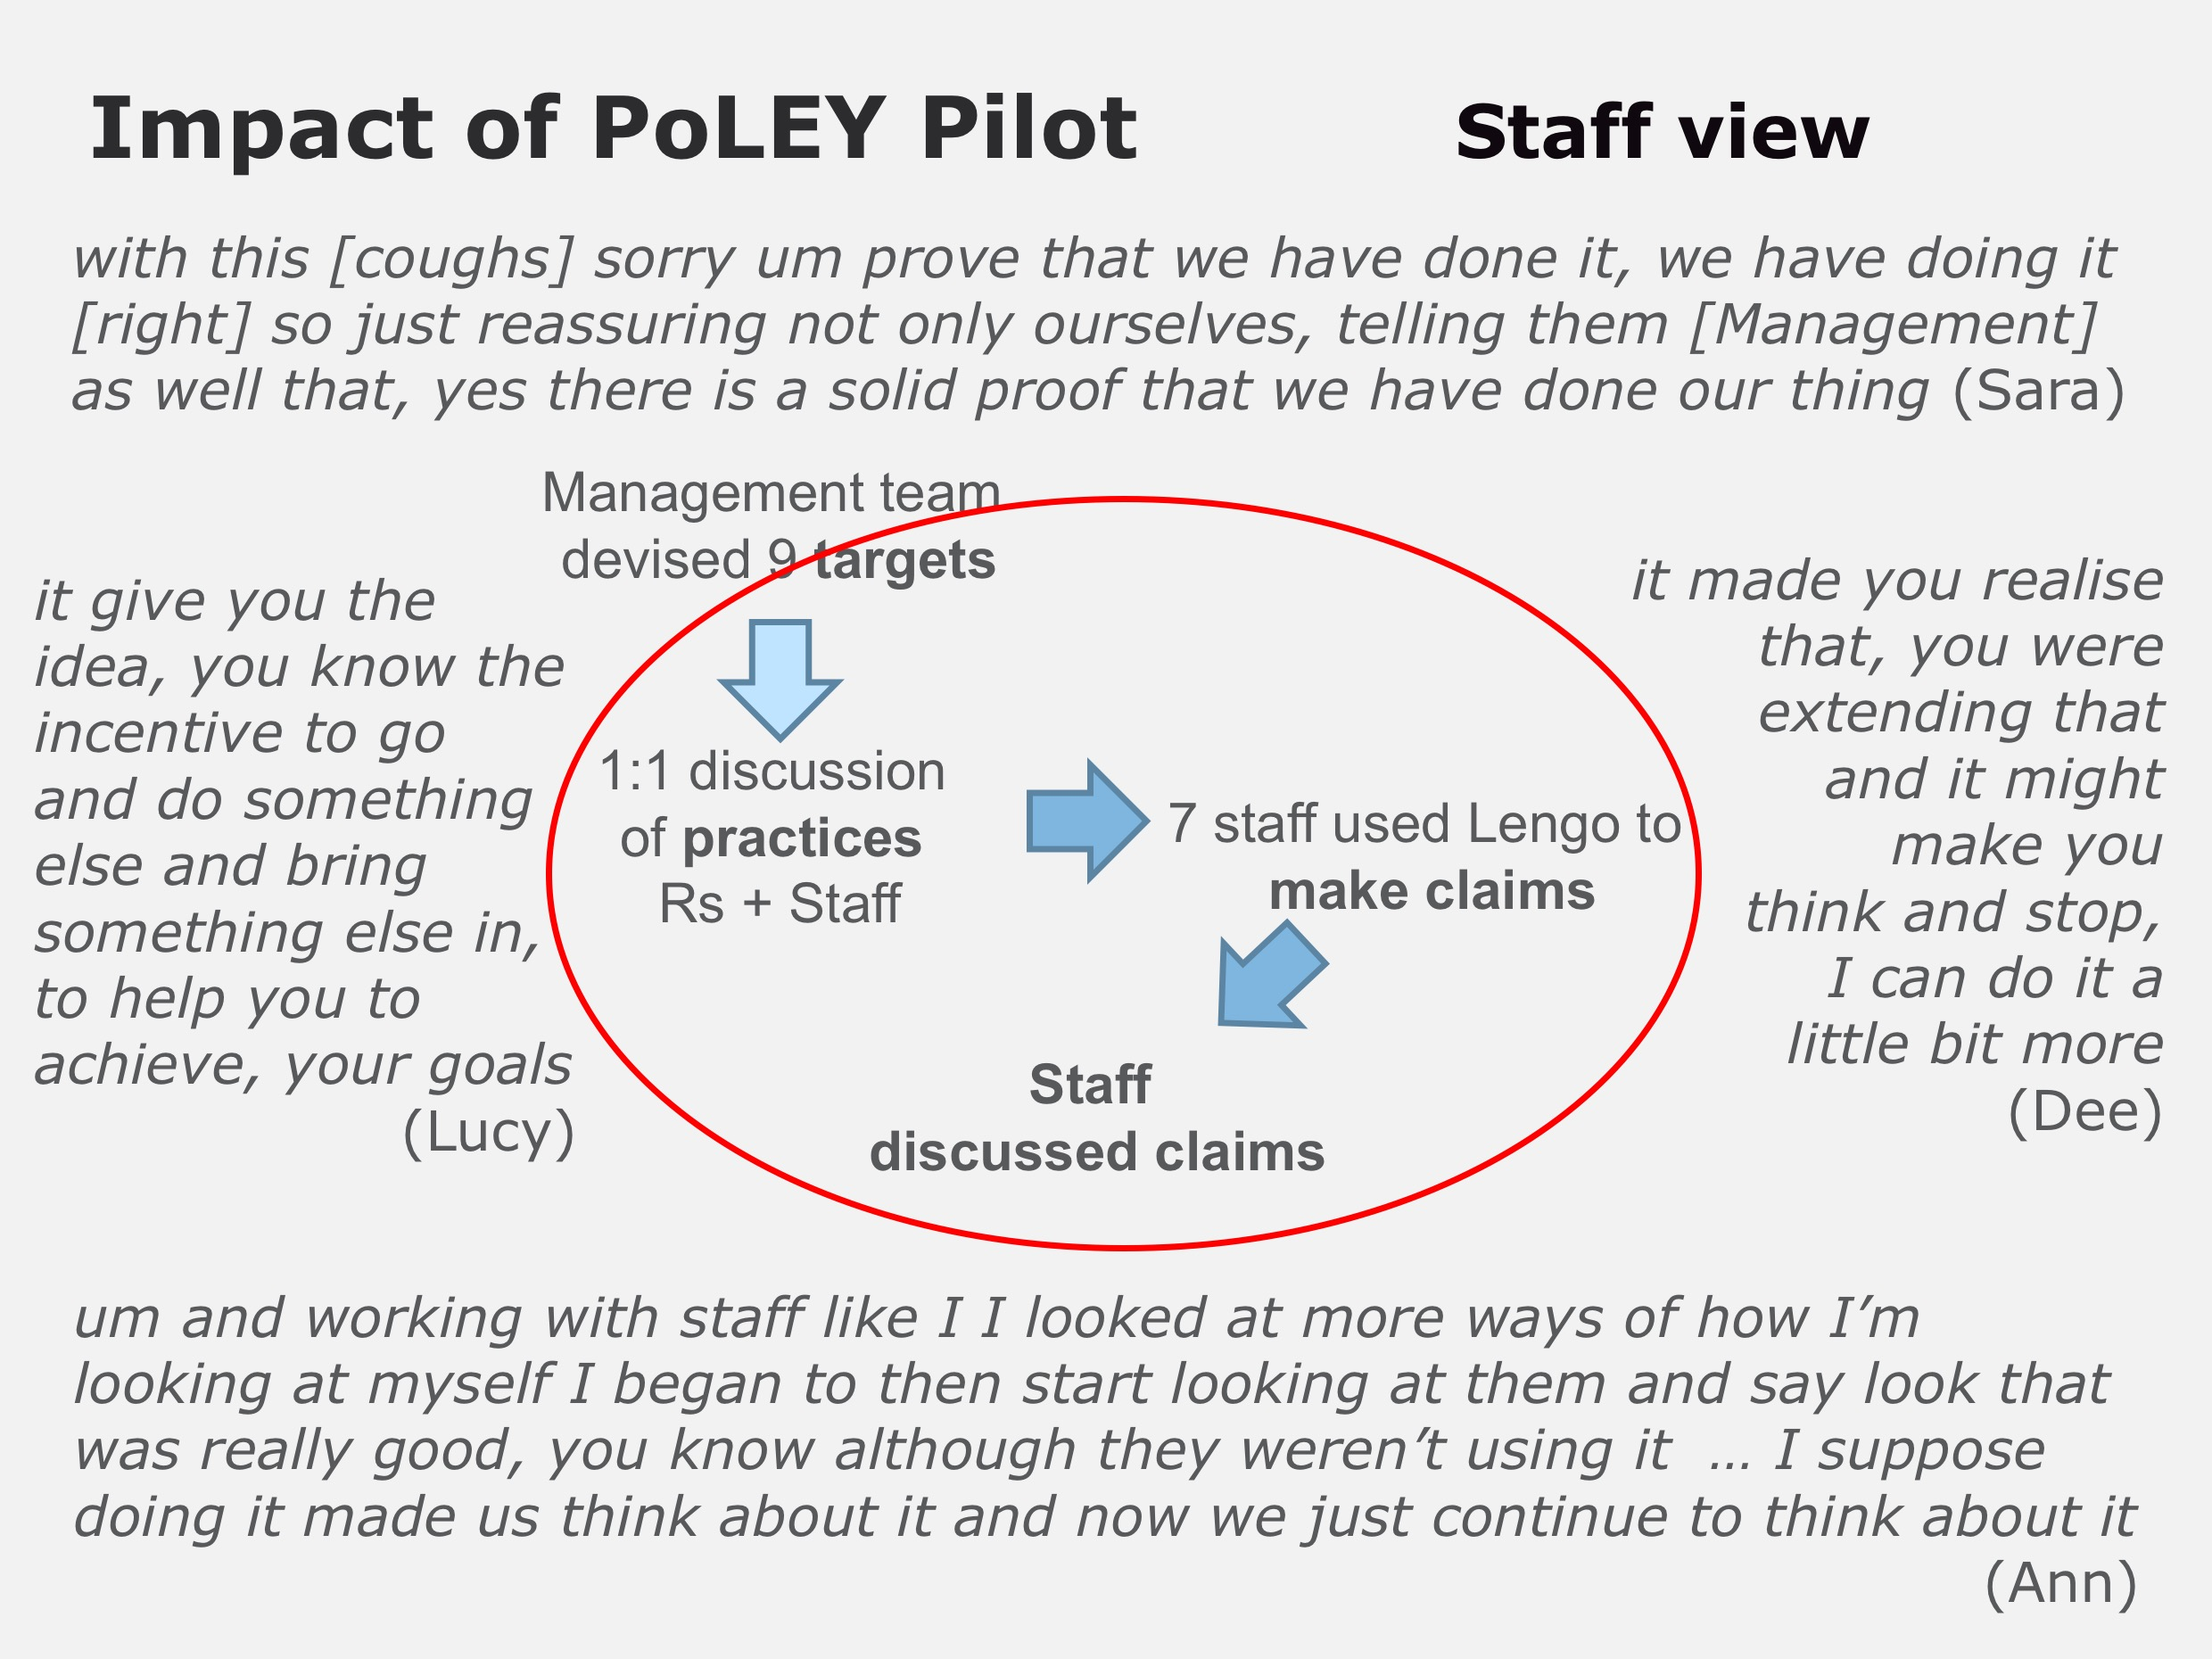 PoLEY Pilot staff views